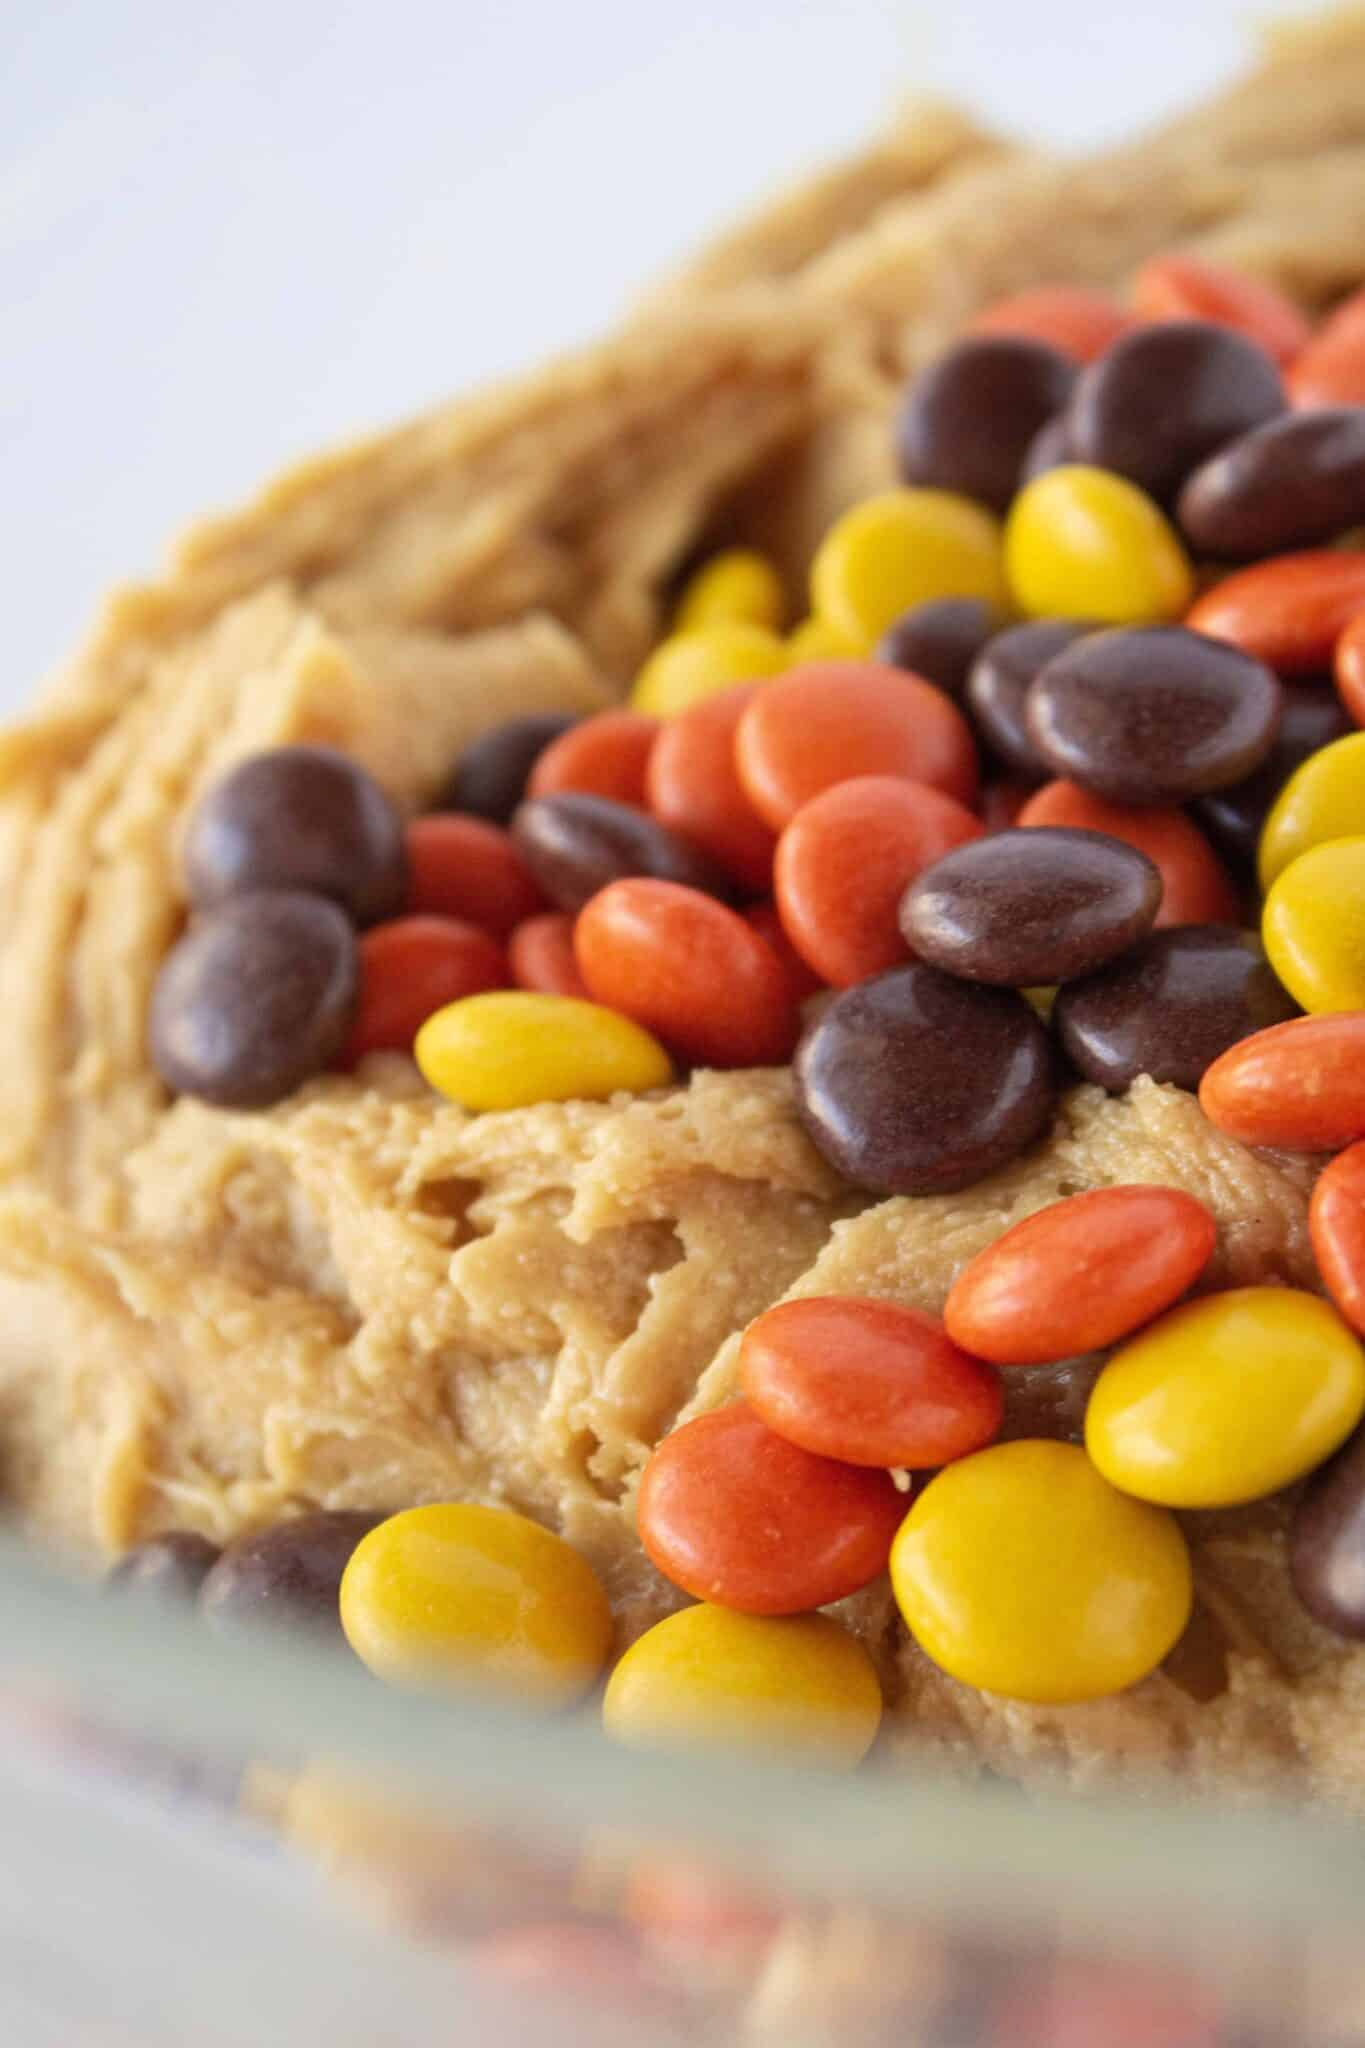 Reese's Pieces Peanut Butter Cookies Recipe with a Cake Mix and Dipped in Chocolate featured by top US cookies blogger, Practically Homemade